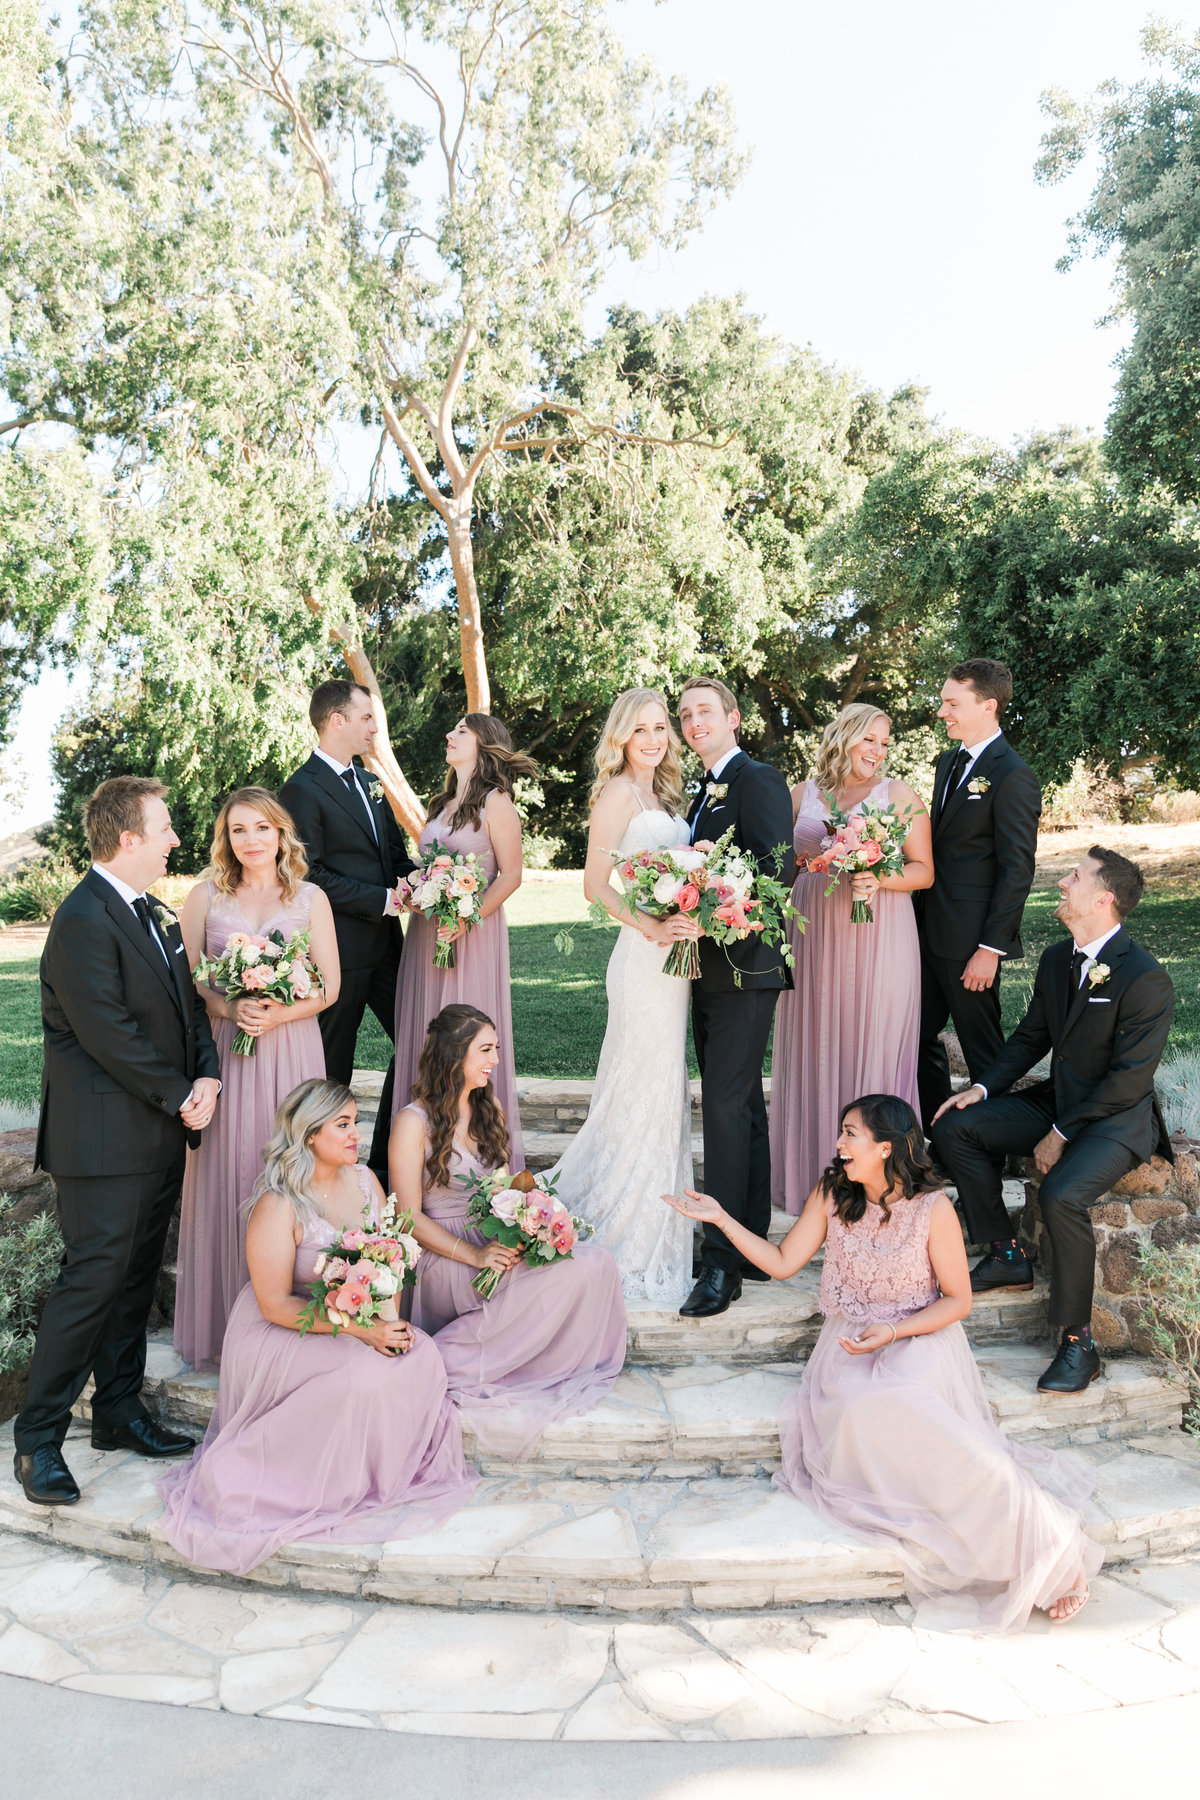 Quail_Ranch_Blush_California_Wedding_Valorie_Darling_Photography - 112 of 151